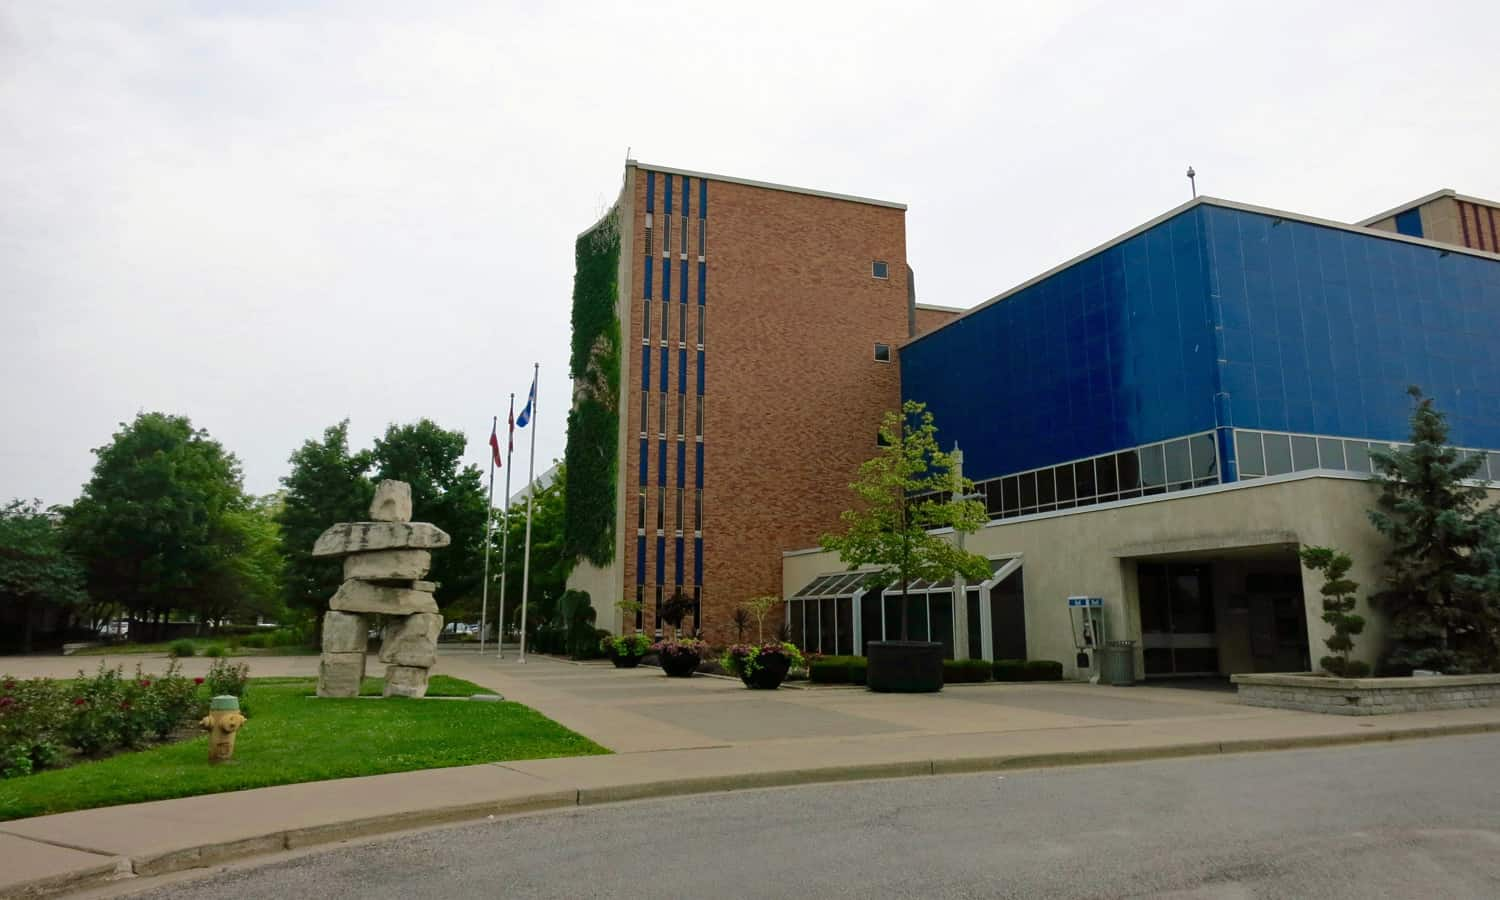 View from northwest of the tower and council chamber clad in blue enameled steel